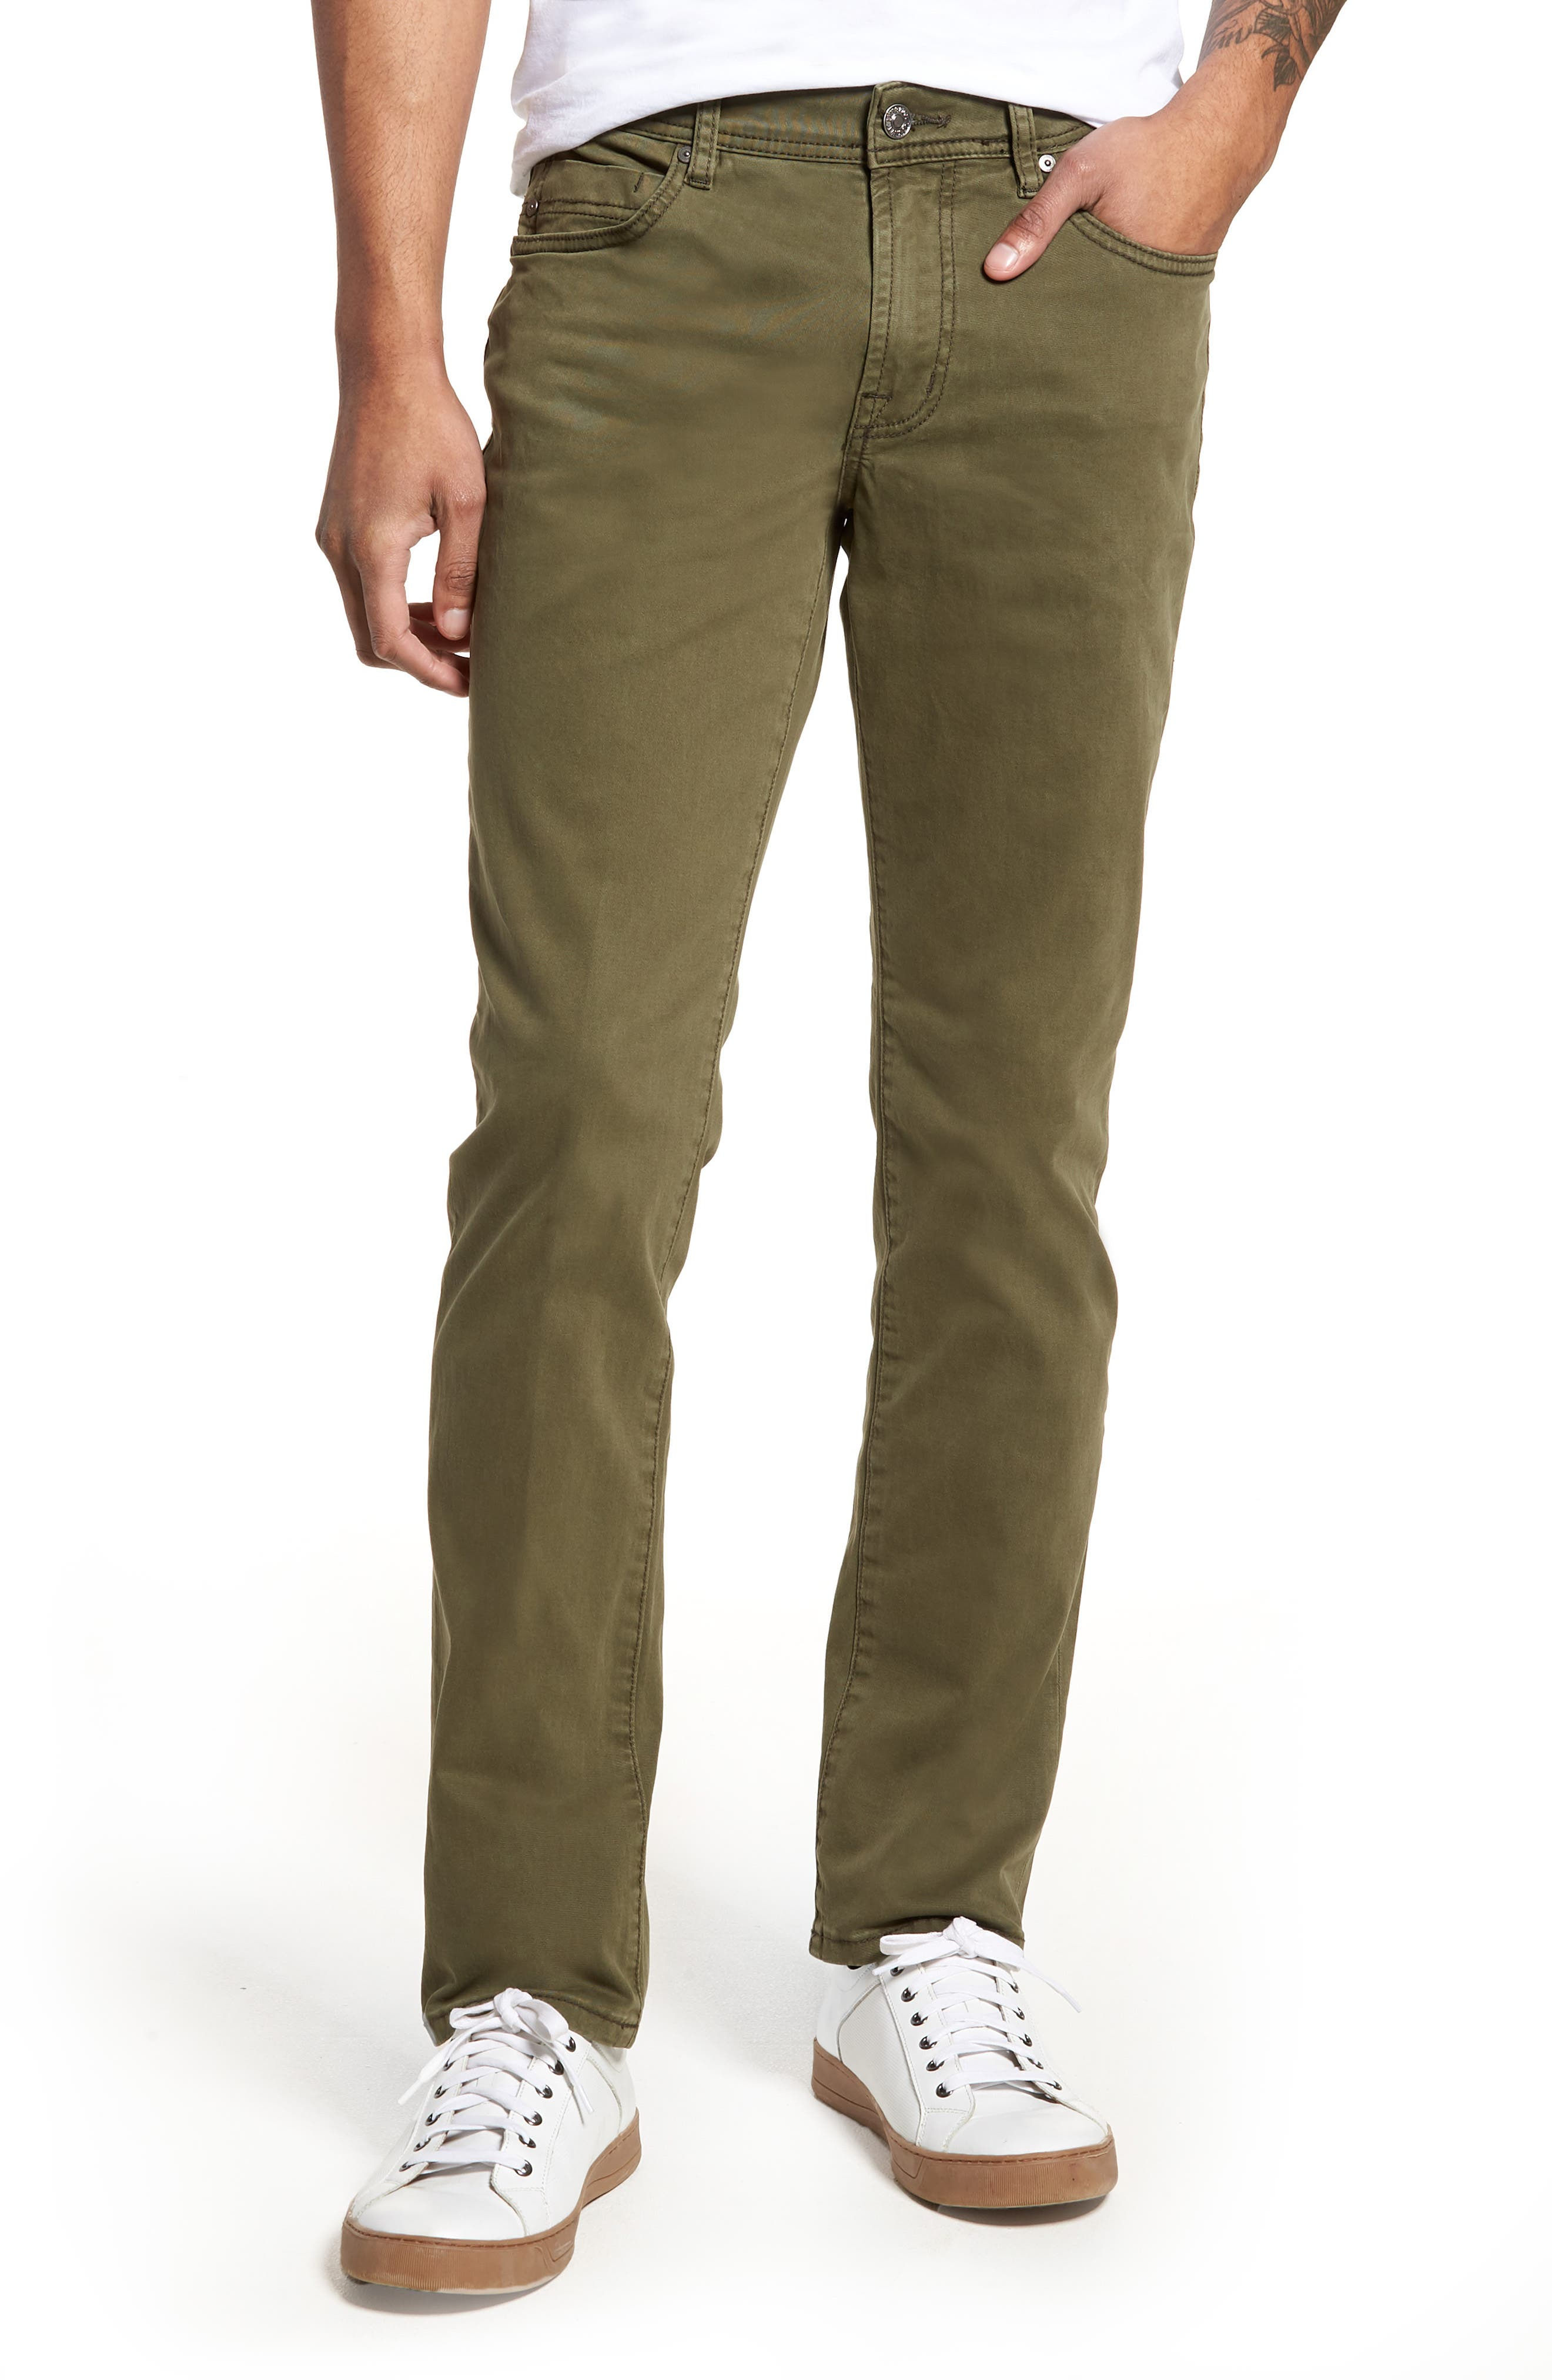 Jeans Co. Kingston Slim Straight Leg Jeans,                         Main,                         color, OLIVE NIGHT